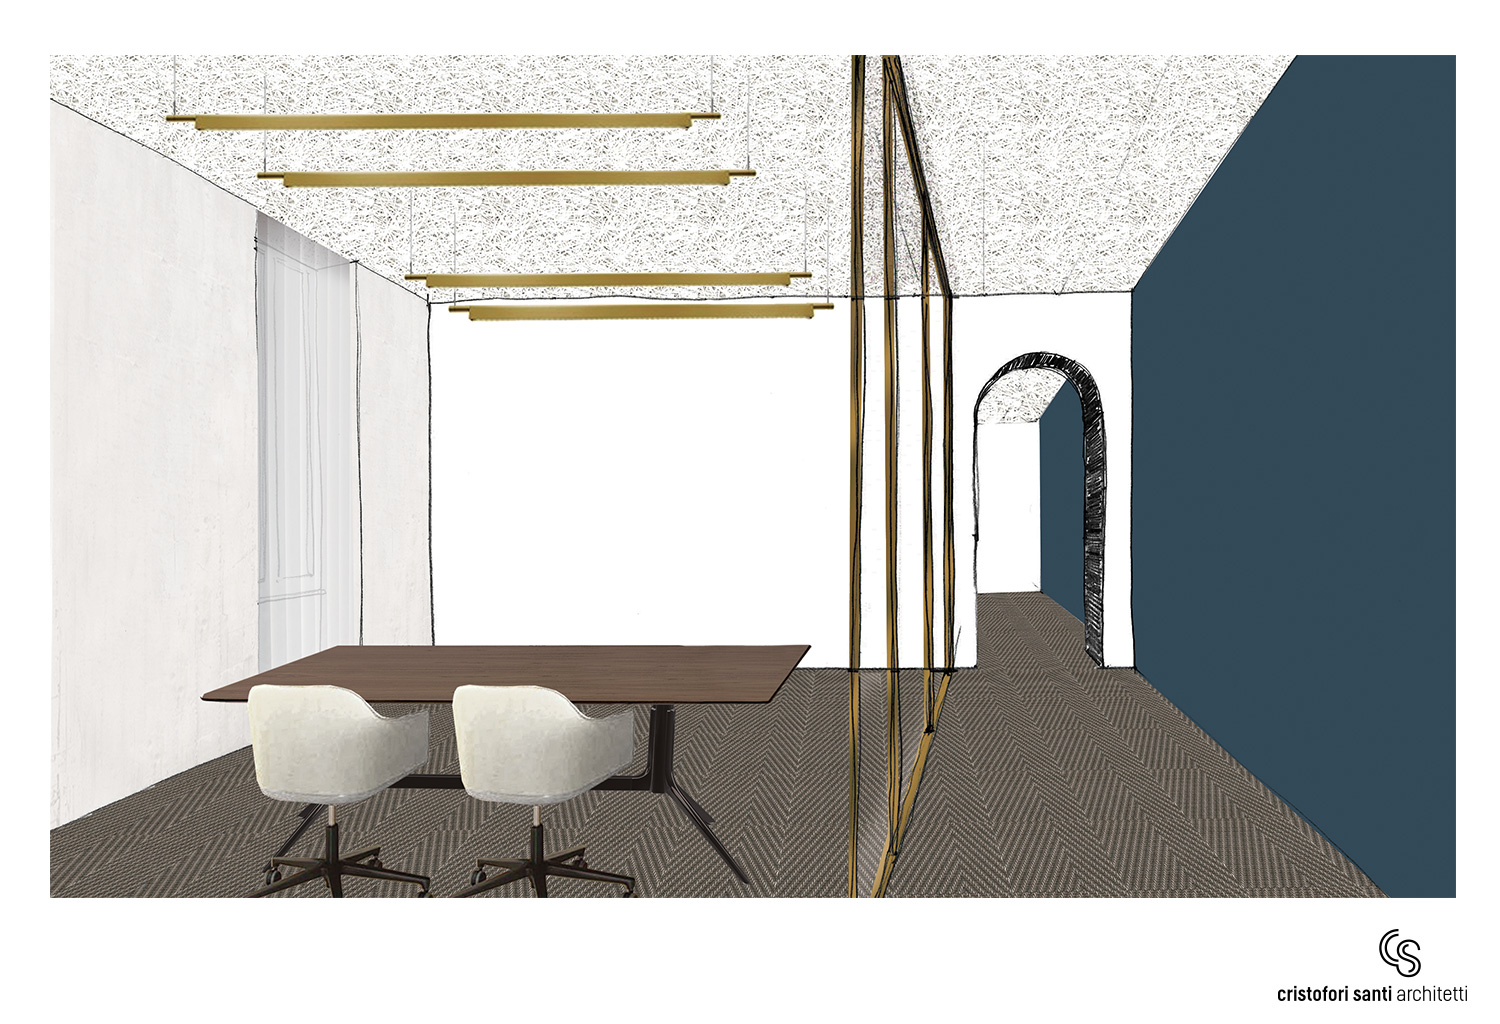 SKETCH OFFICE EPIC MOOD CRISTOFORI SANTI ARCHITETTI ASSOCIATI}